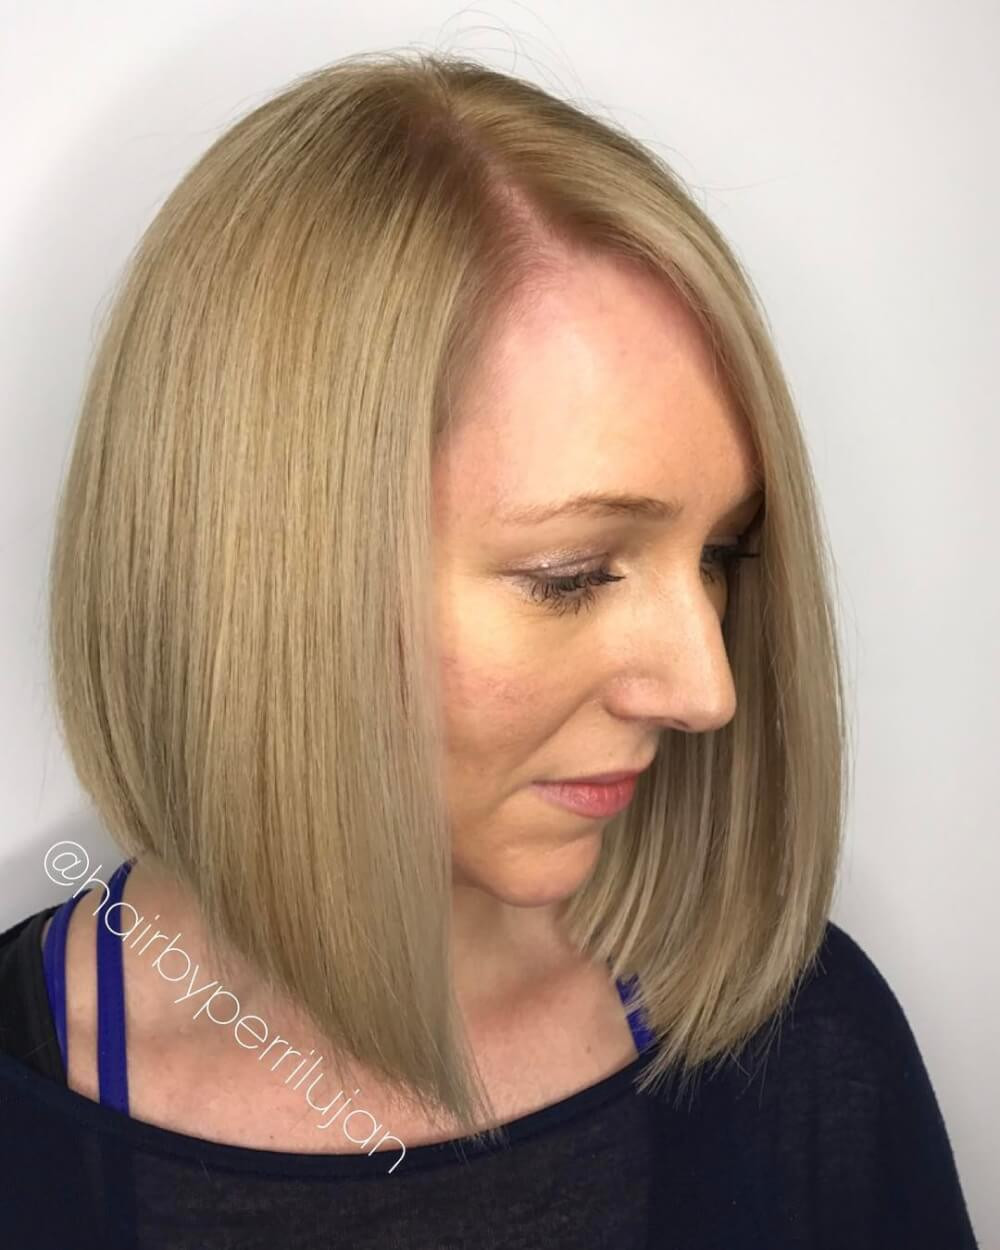 Best ideas about A Bob Hairstyle . Save or Pin 50 Chic Short Bob Hairstyles & Haircuts for Women in 2019 Now.